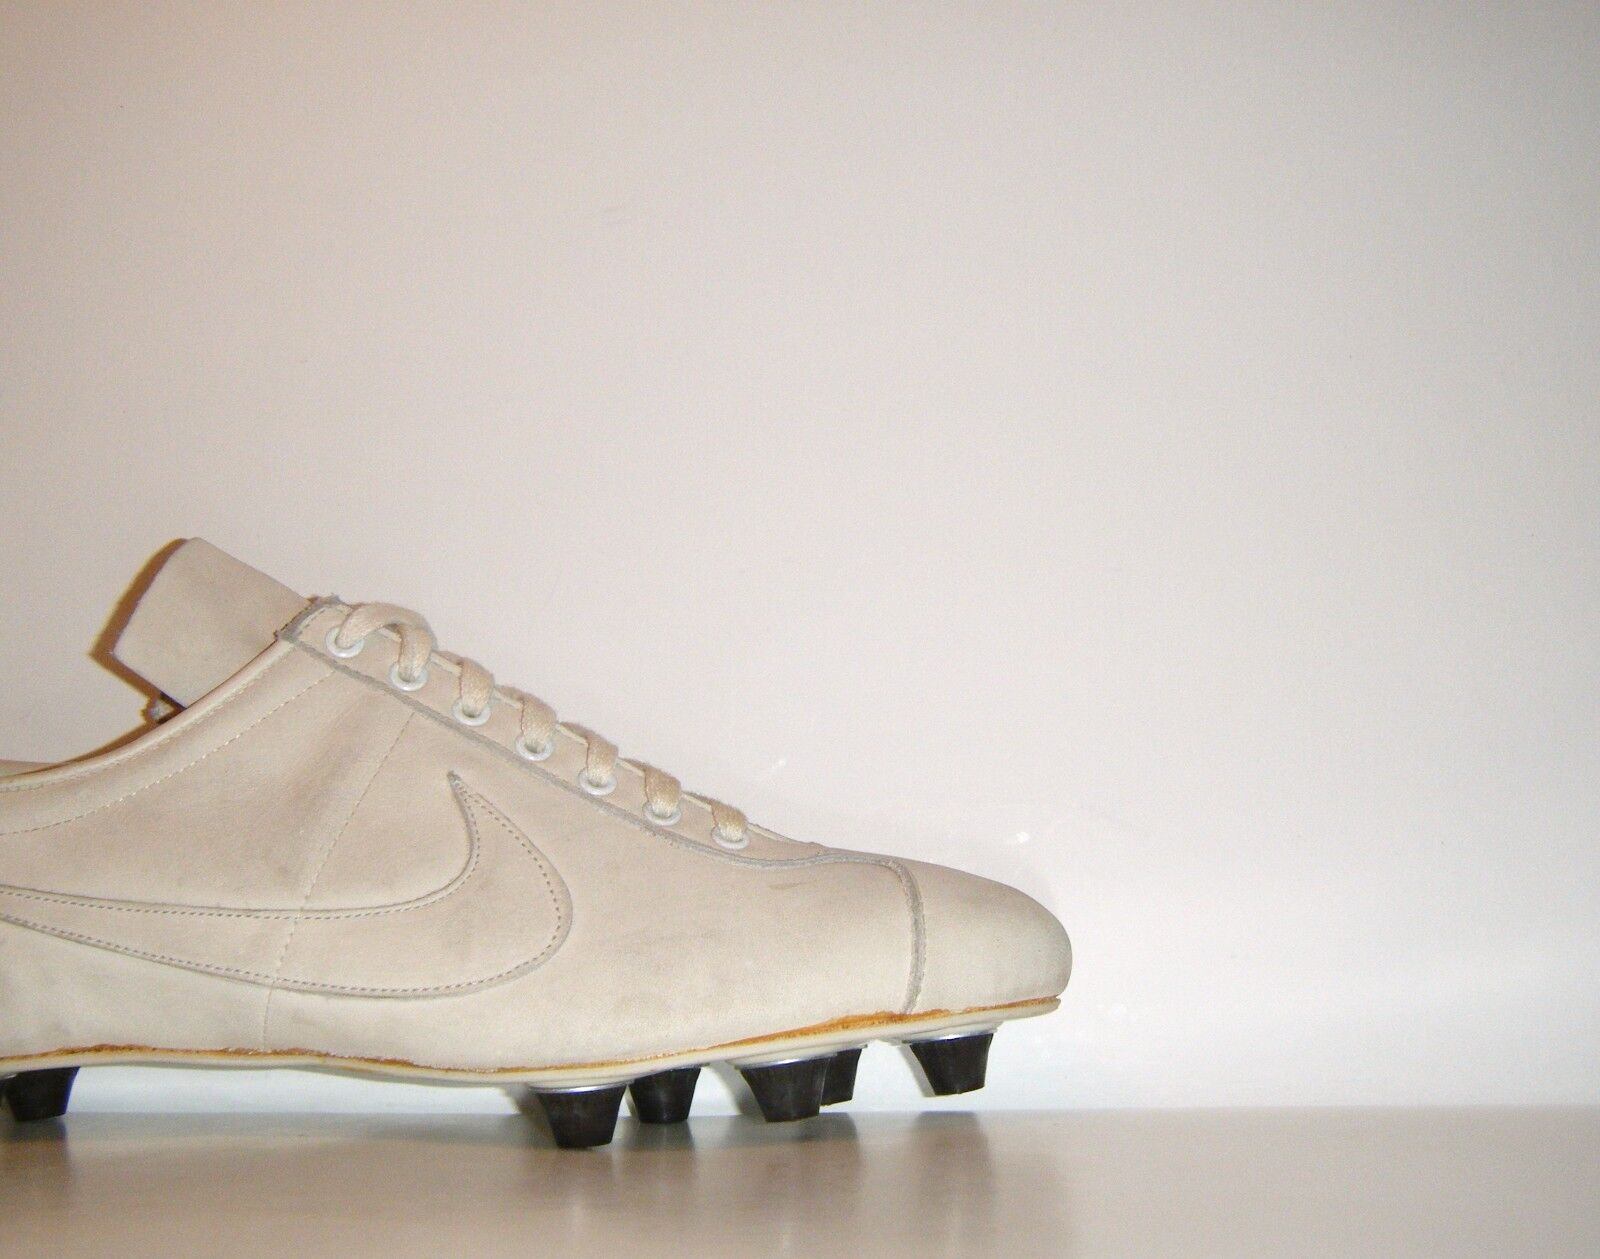 Vtg 80's Nike Handmade Cleats Oregon Sample 10.5 Mercurial Vapor Waffle PE 70's